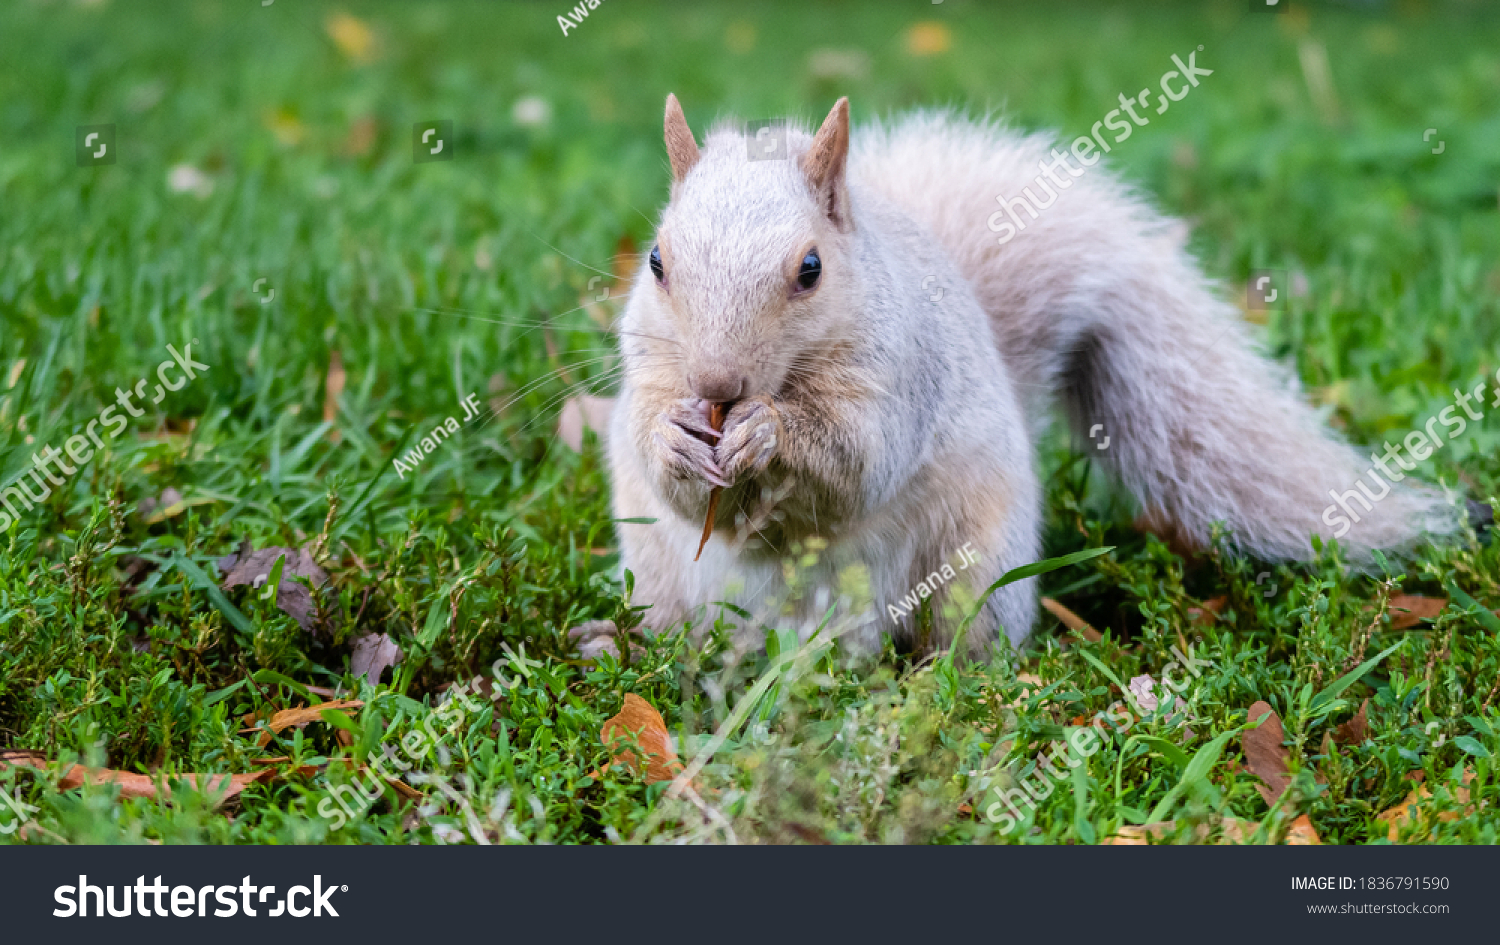 stock-photo-view-of-a-white-squirrel-eat